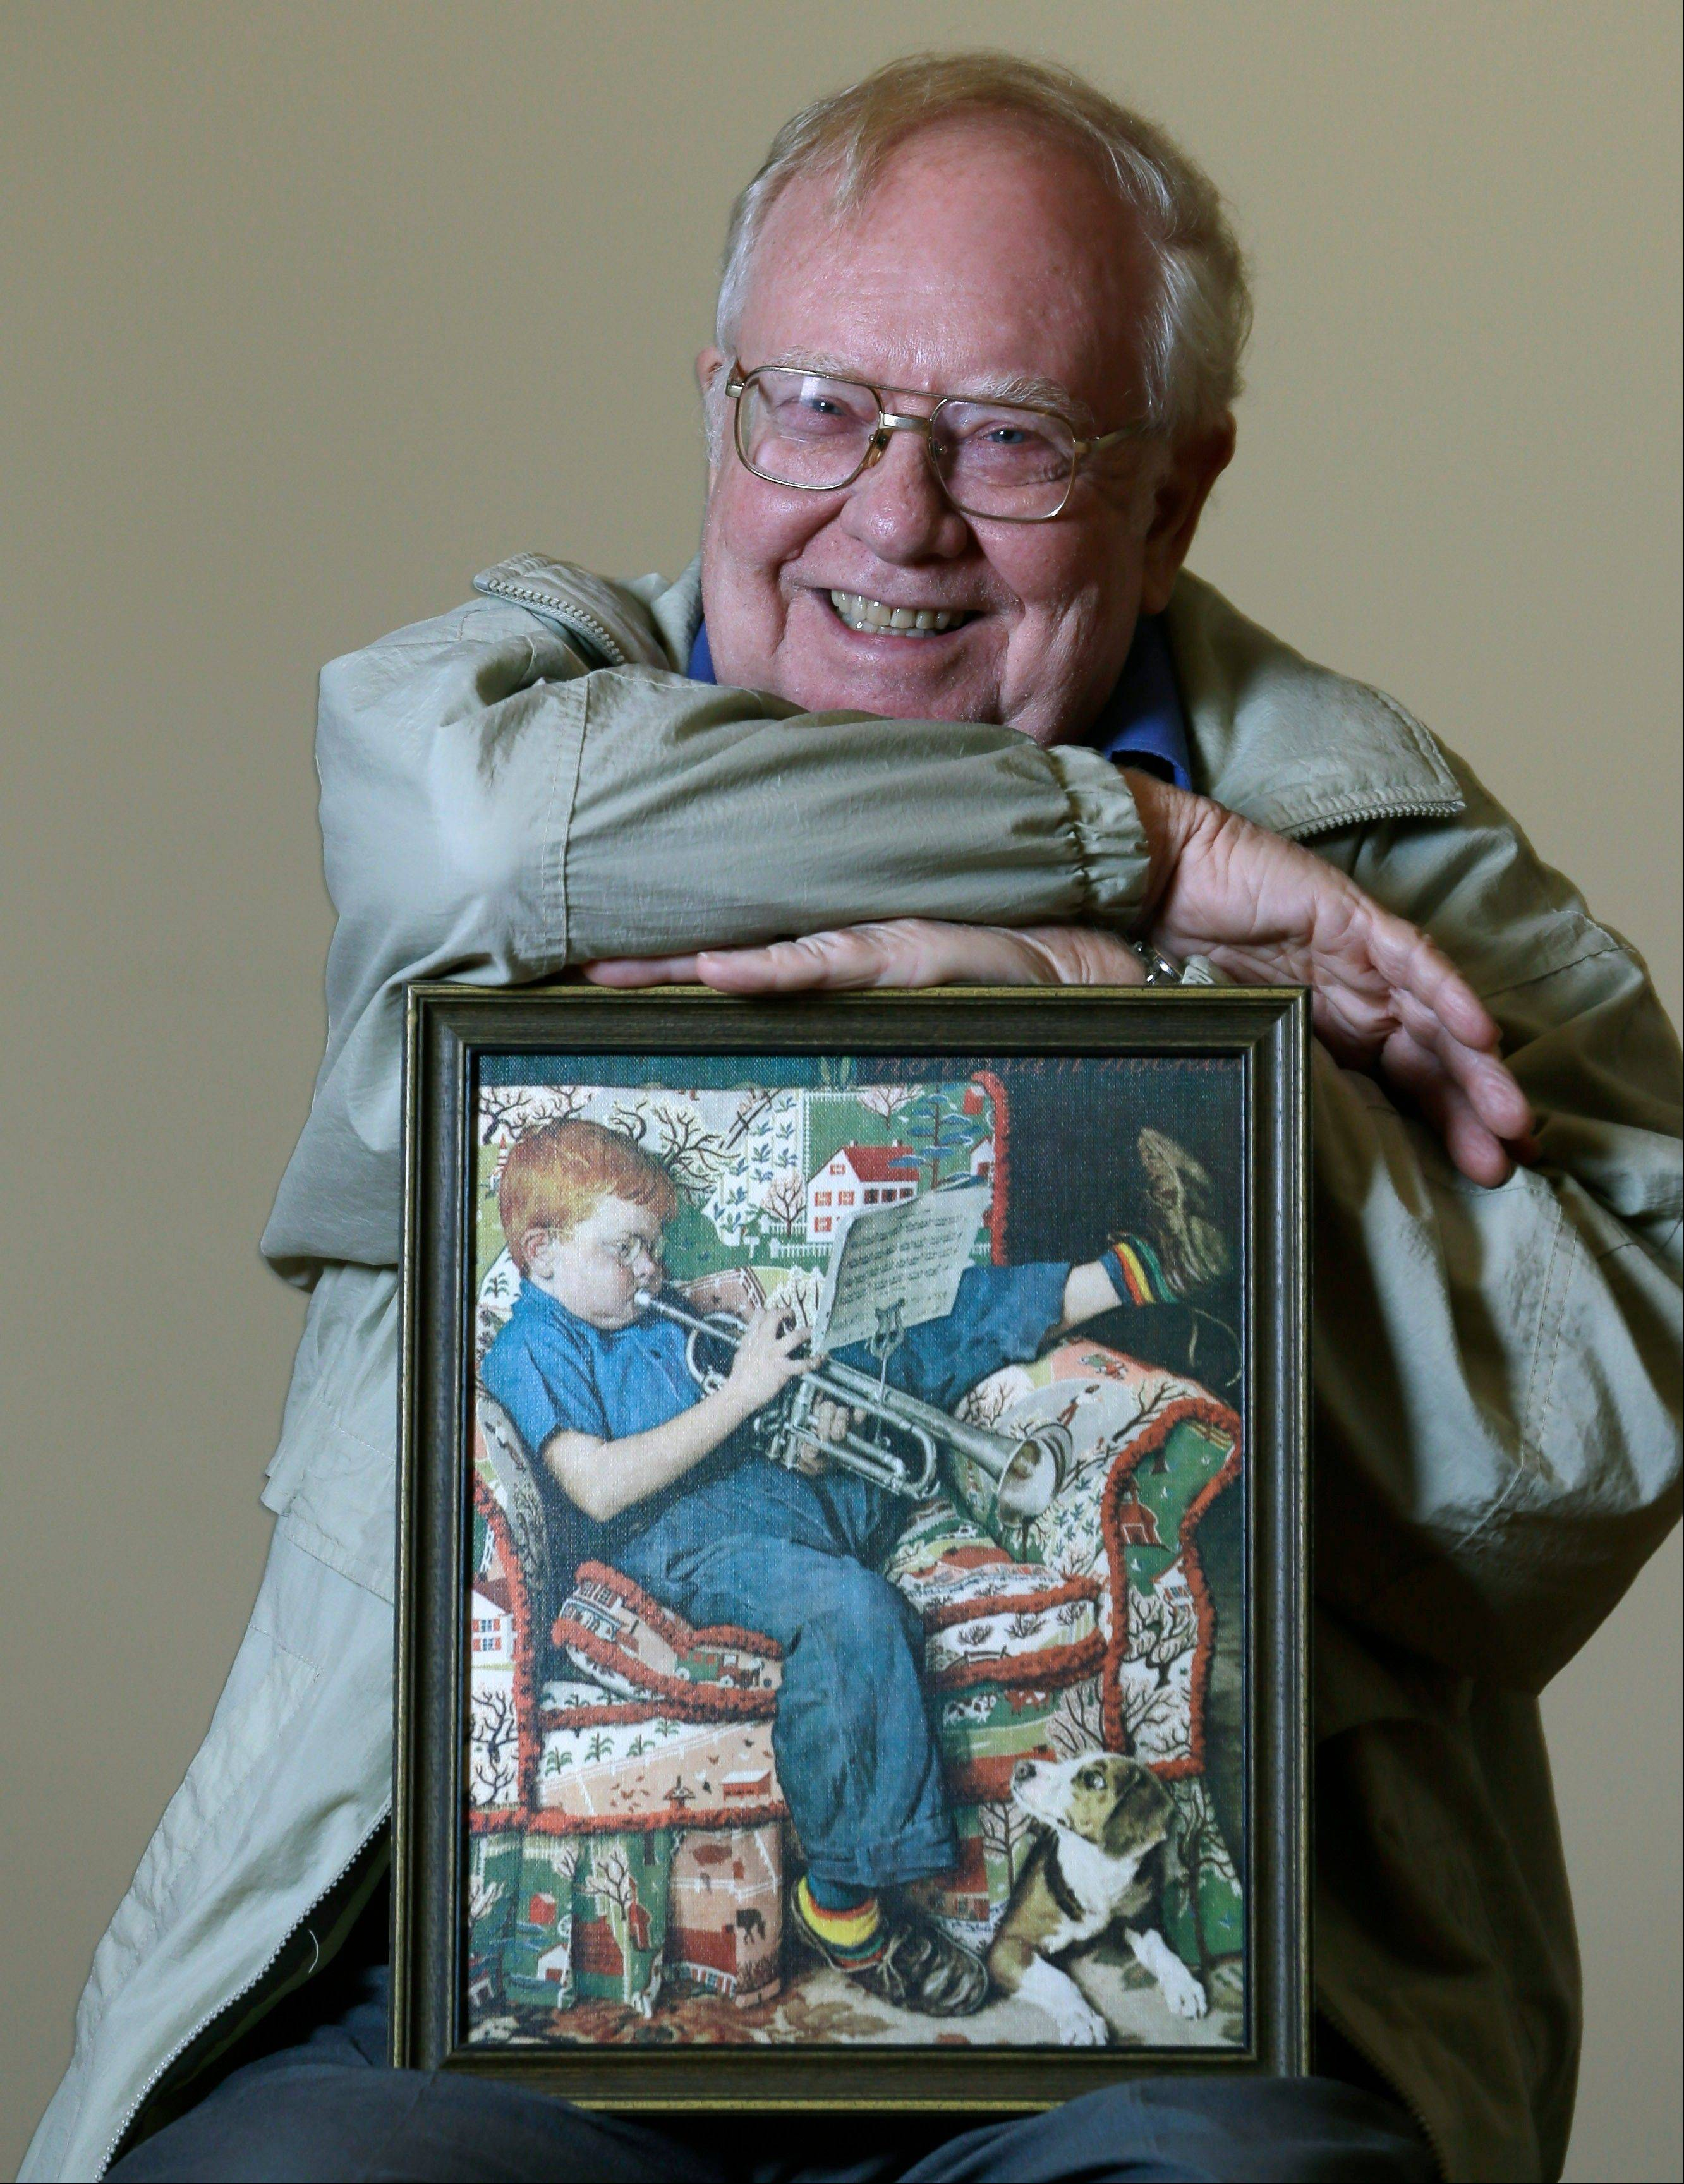 Associated PressTom Paquin of North Bennington, Vt., poses Friday with a 1950 Saturday Evening Post cover illustration by Norman Rockwell for which he modeled, at the Bennington Museum in Bennington, Vt.